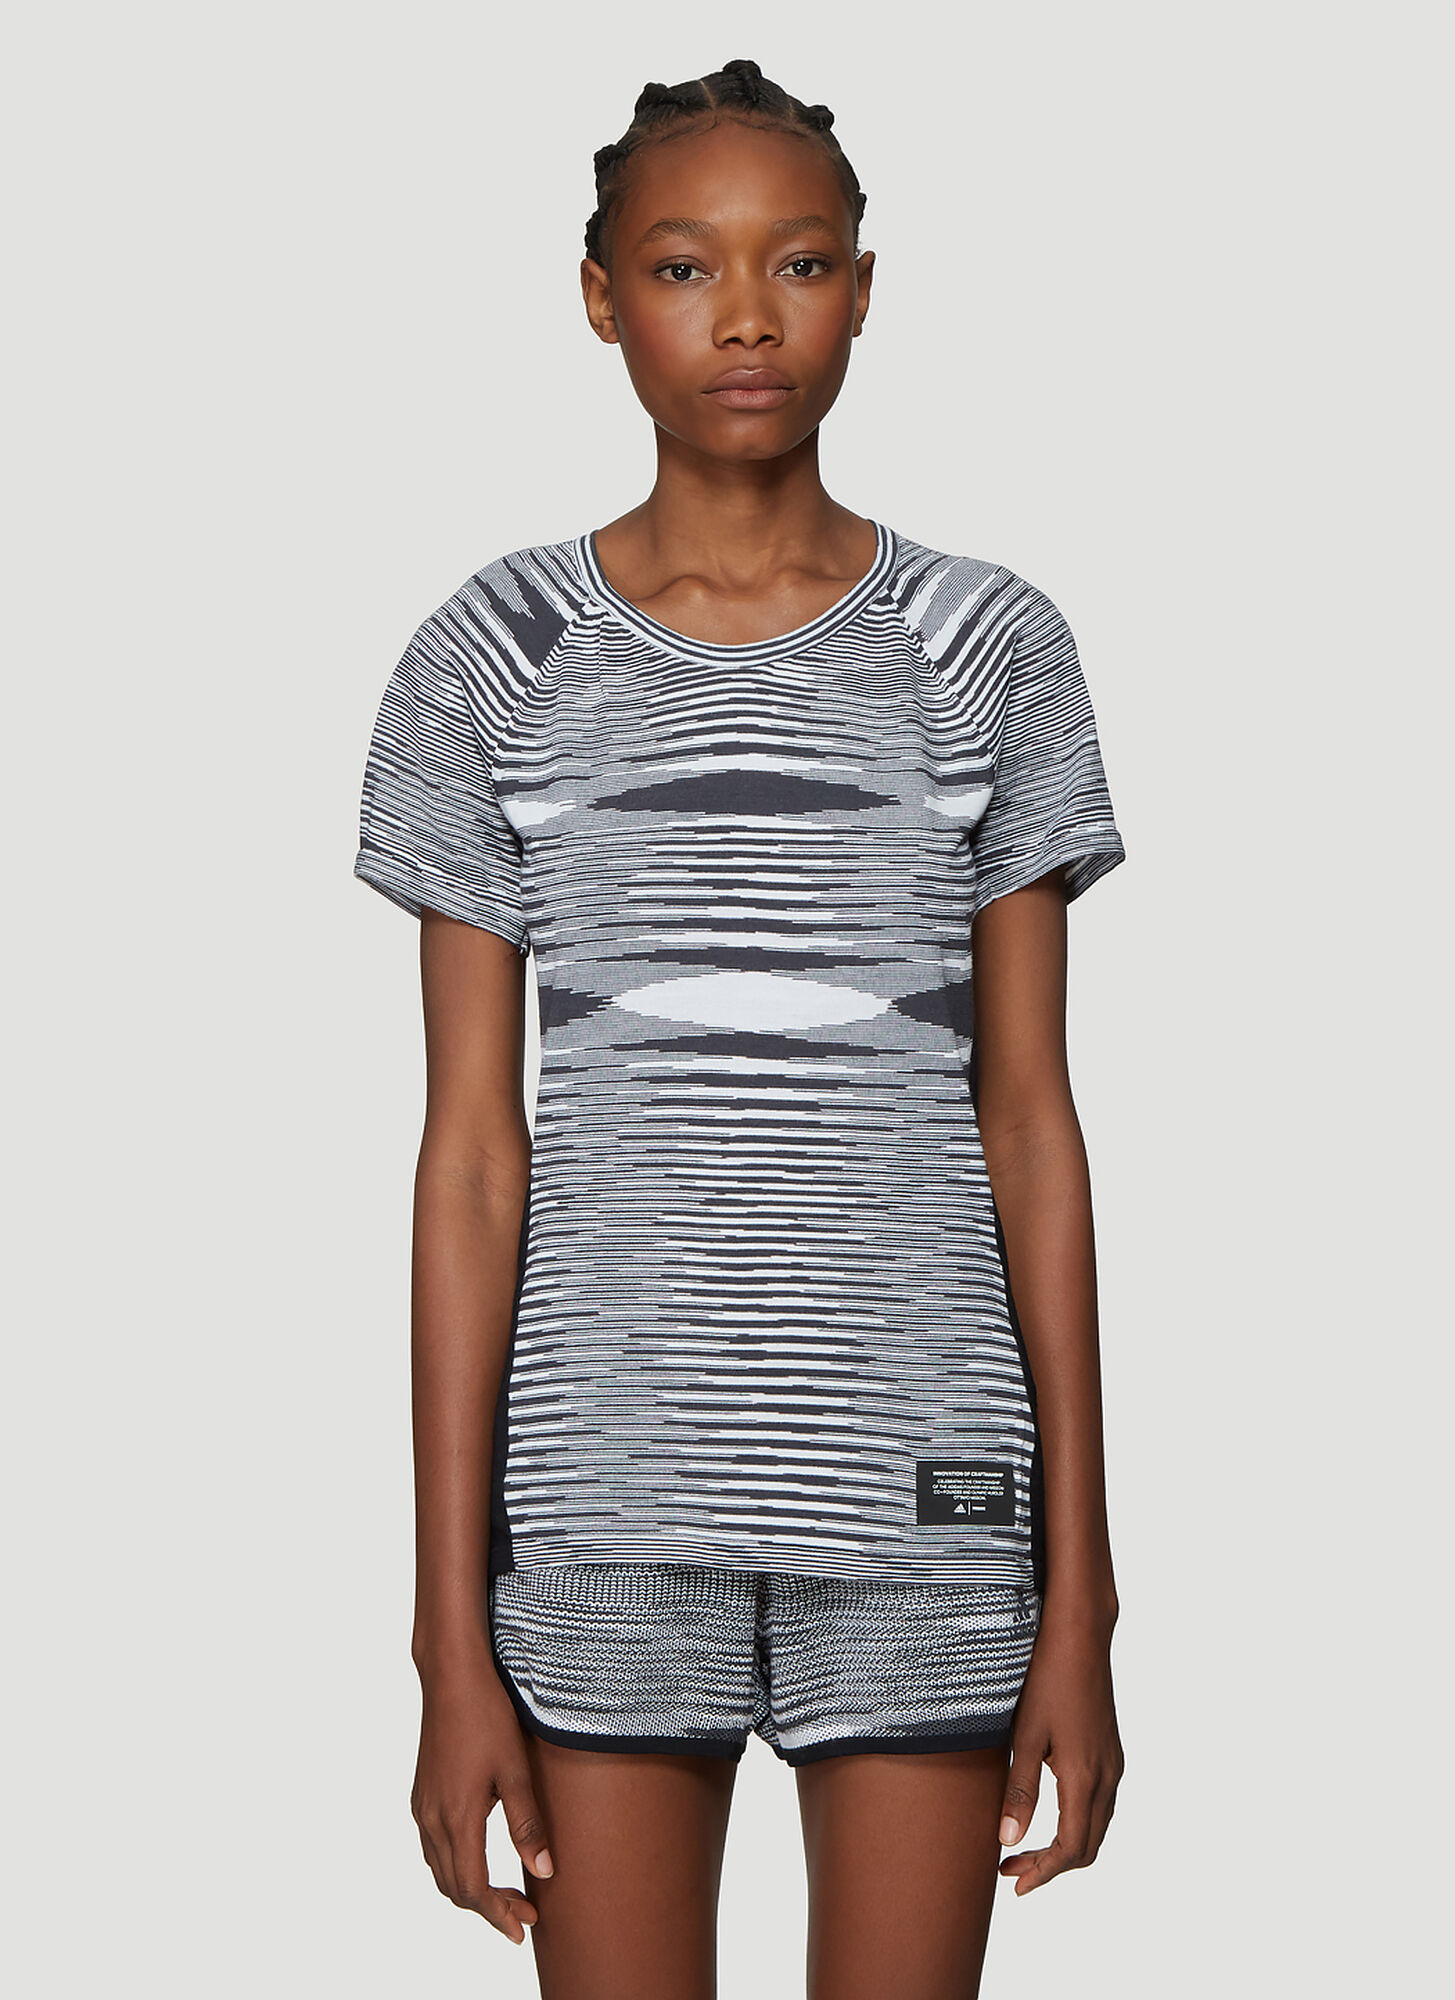 Adidas x Missoni X Missoni City Runners Unite T-Shirt in Grey